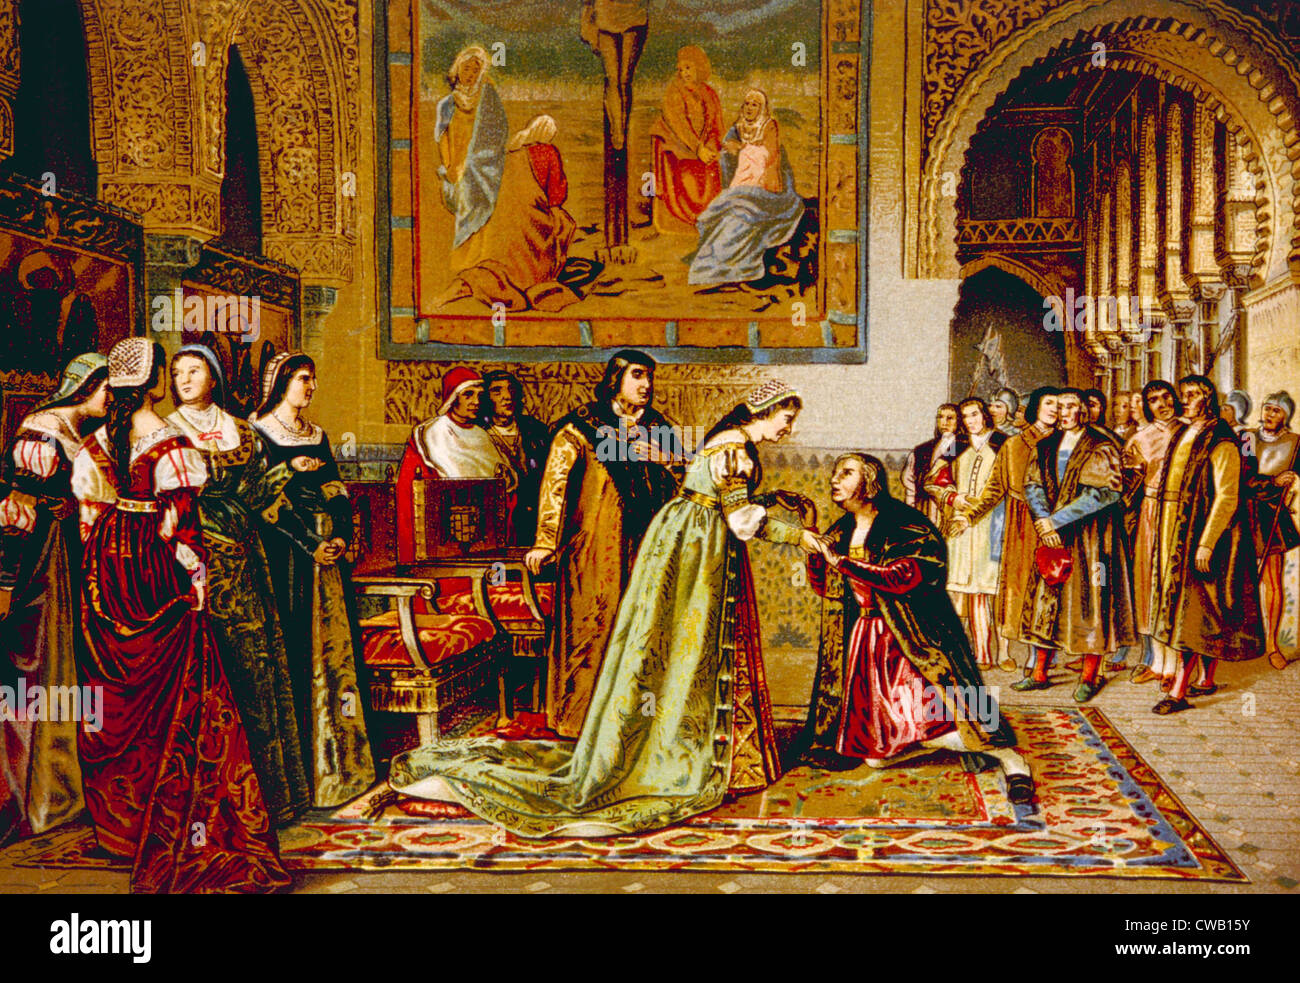 christopher columbus received by king ferdinand and queen isabella